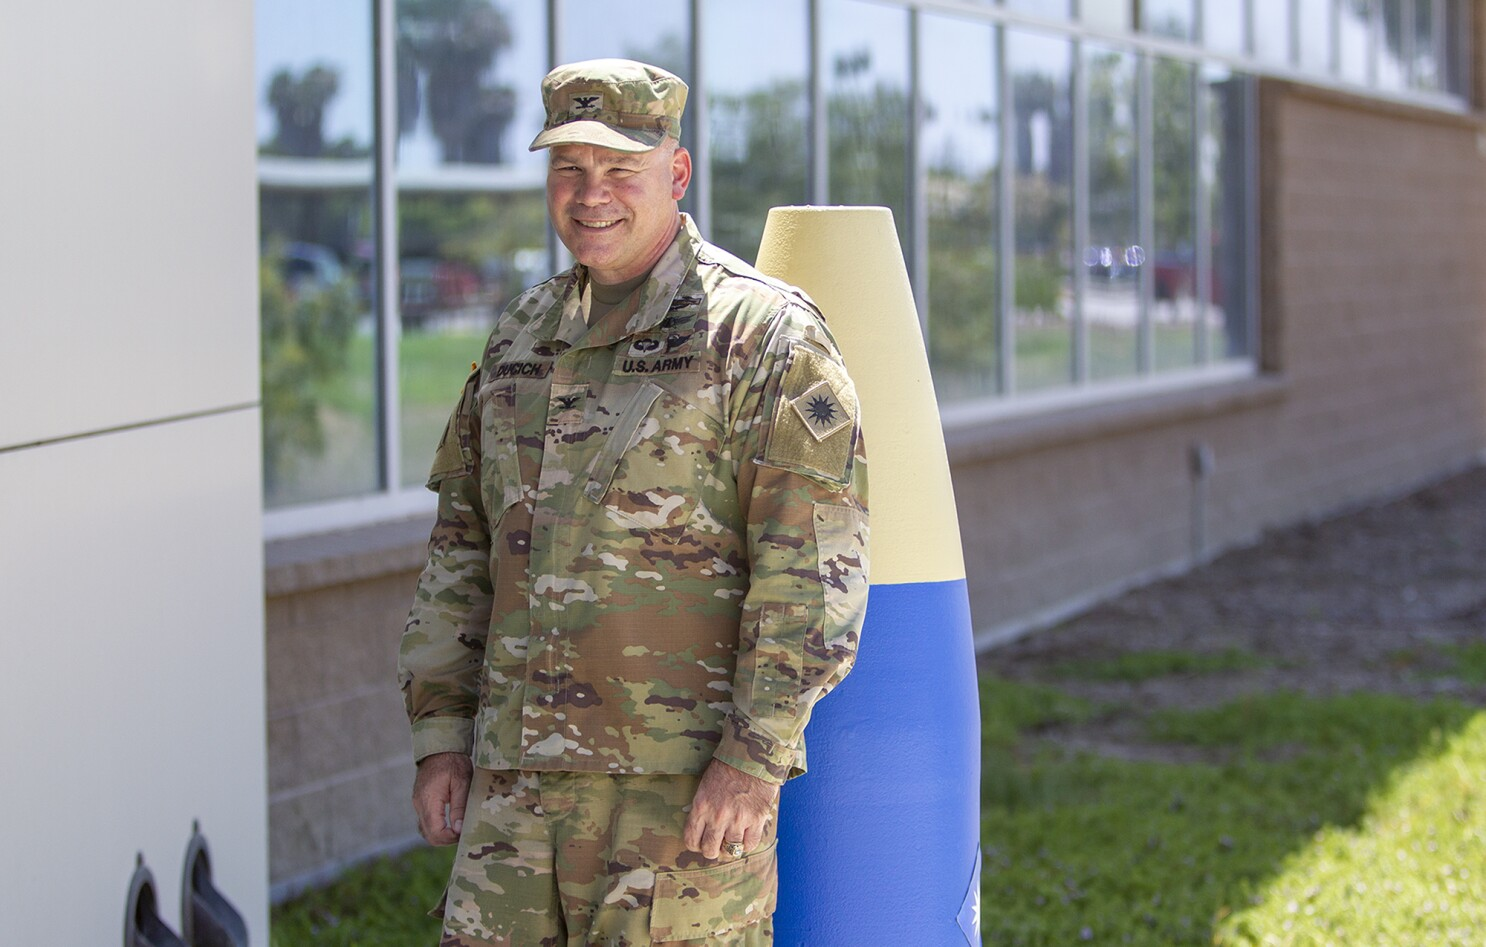 New Los Alamitos training base commander prepares for natural disasters, future conflicts